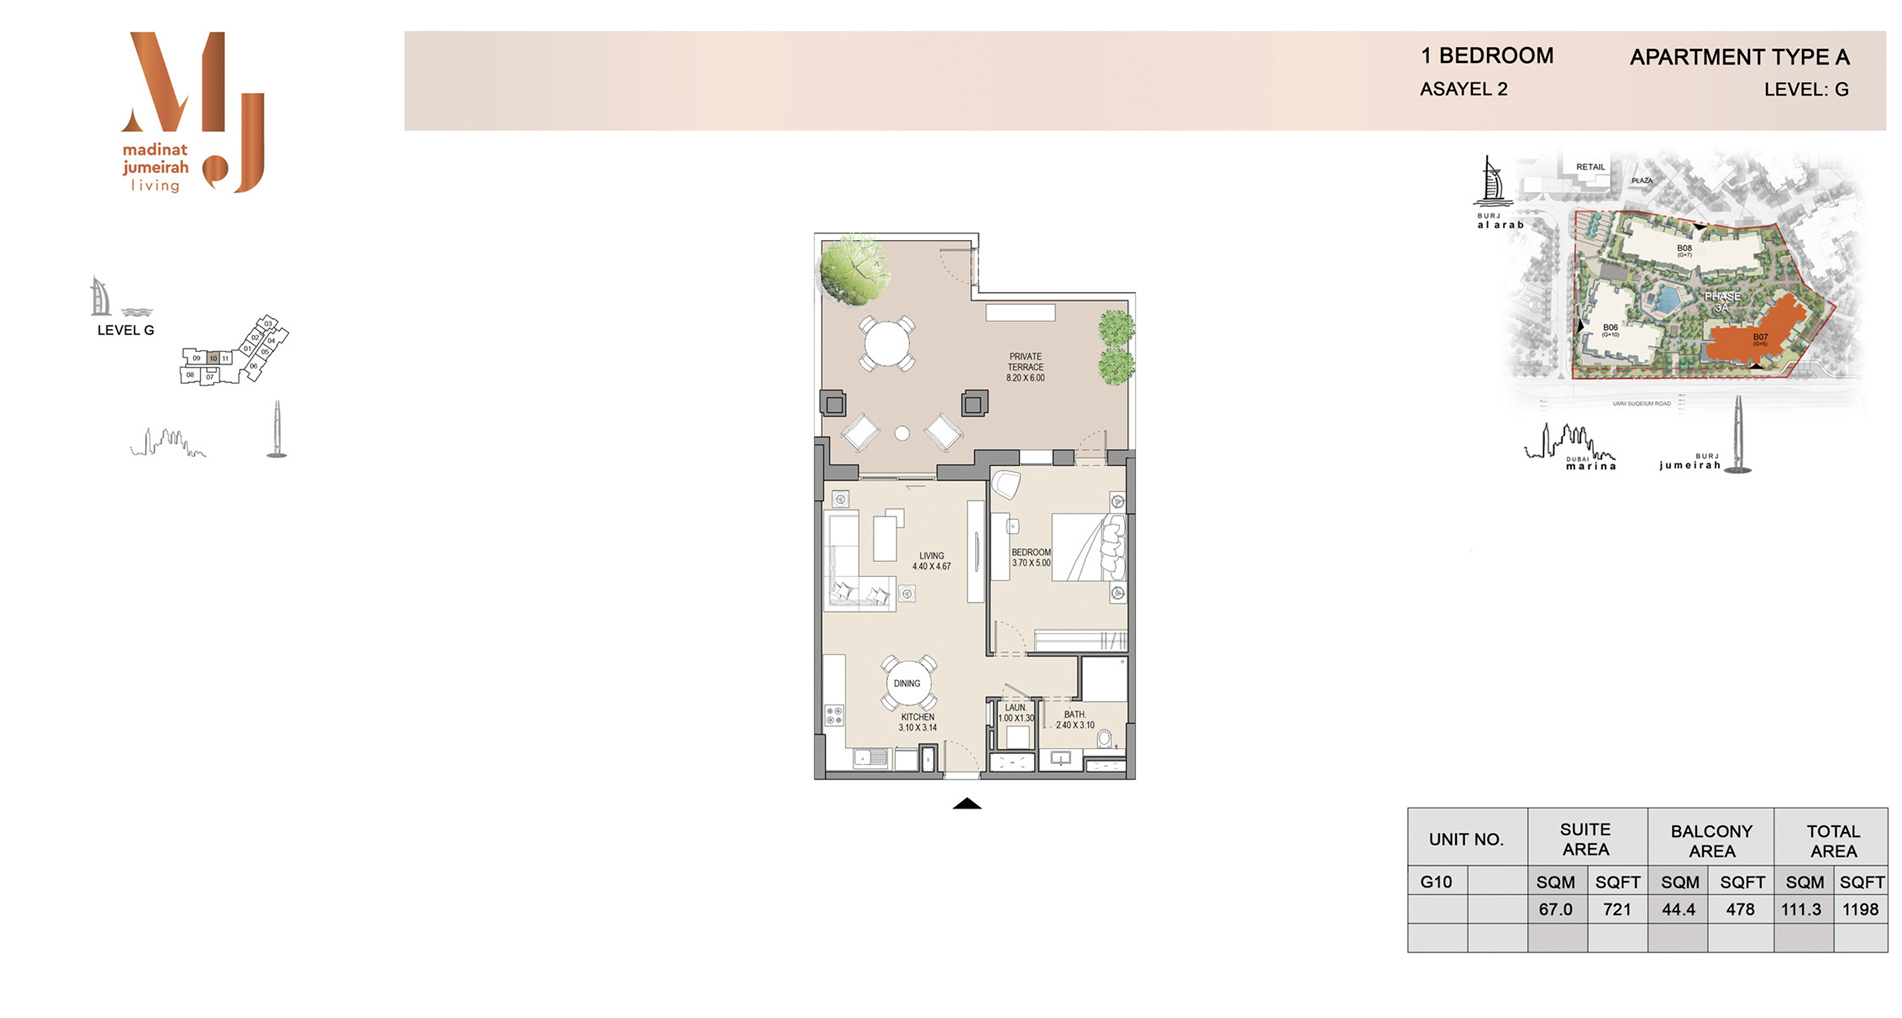 Building-2,-1-Bed-Type-A Level G, Size 1198    sq. ft.